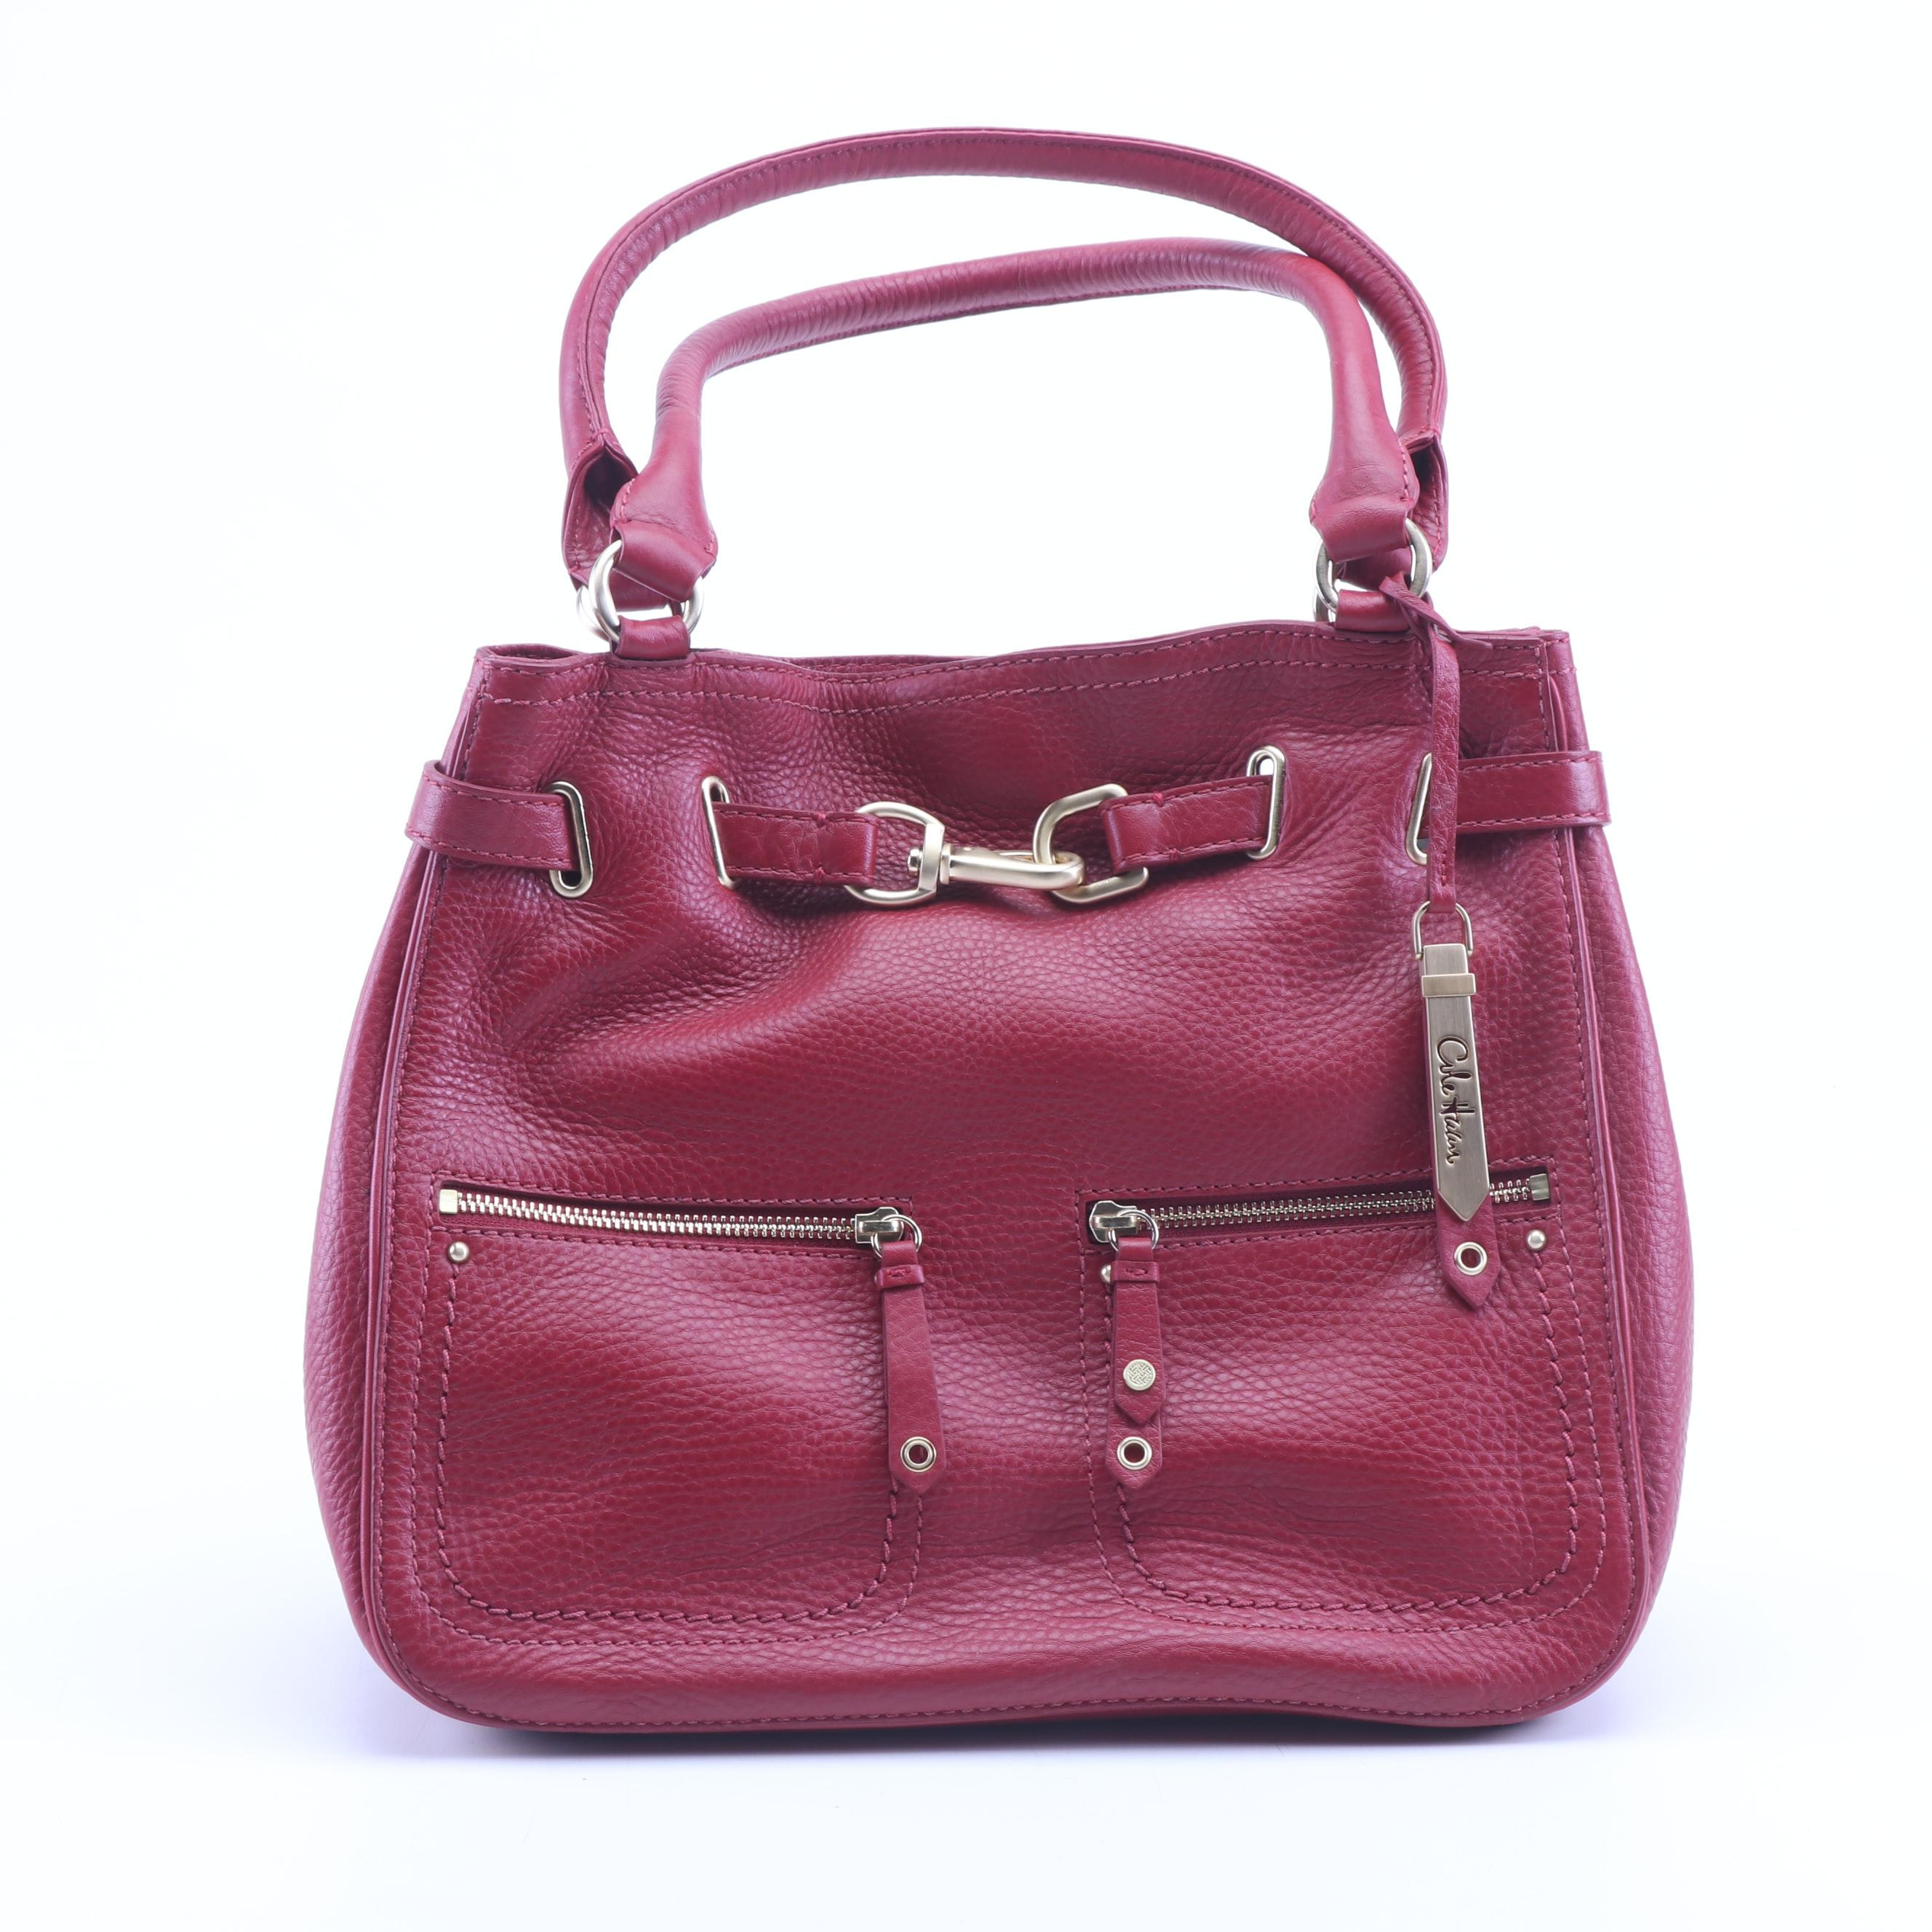 Cole Haan Red Pebbled Leather Shoulder Bag